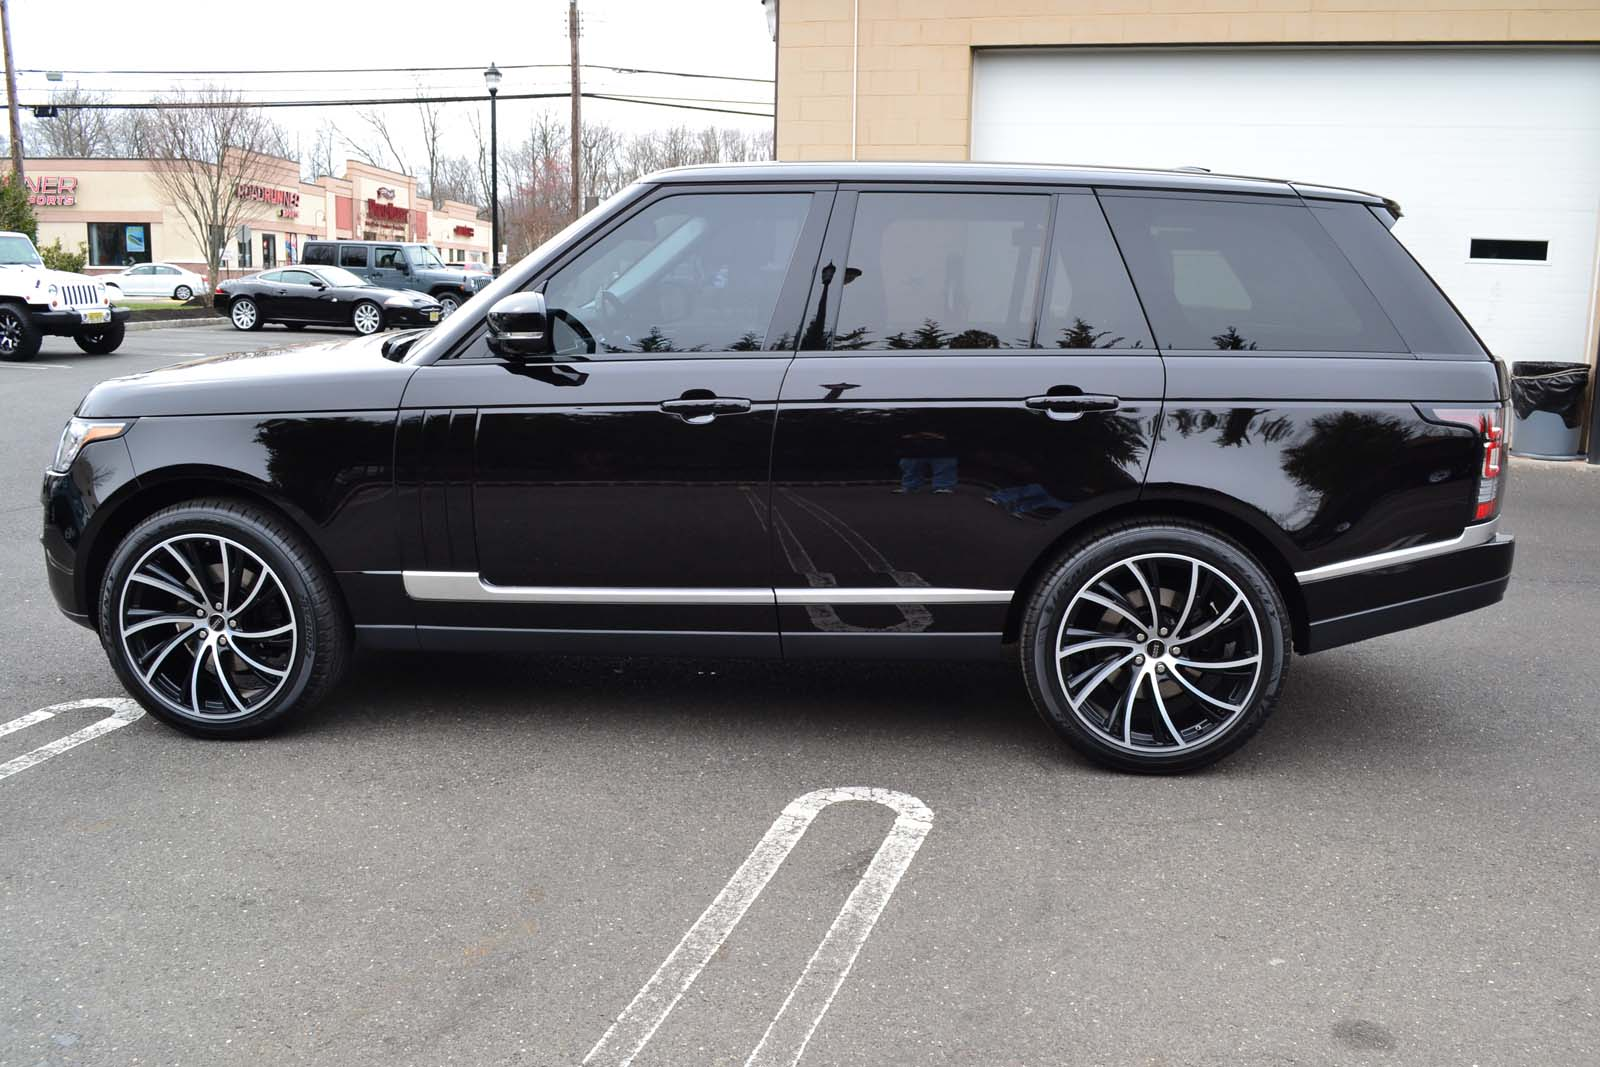 Range Rover Used For Sale >> 2014 Range Rover HSE 3.0L Supercharged Pre-Owned